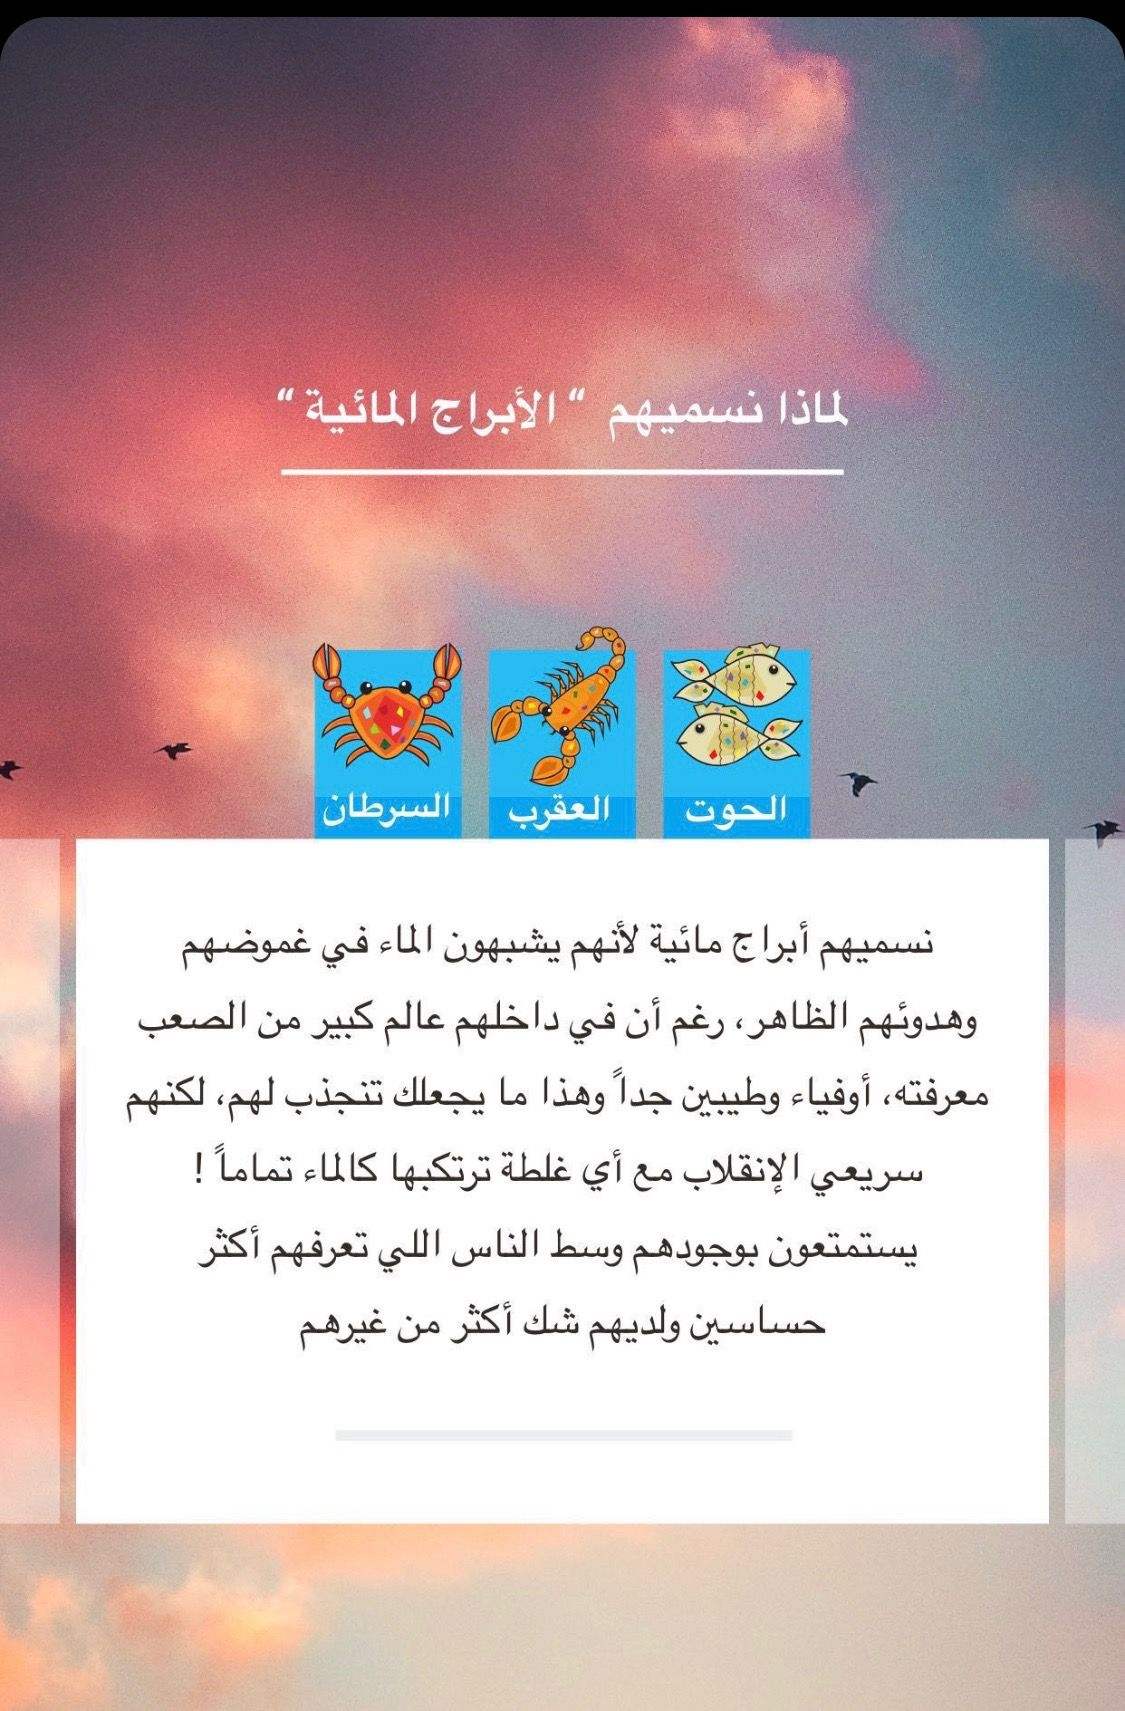 Pin By Mona Fathi On ابراج Arabic Love Quotes Magic Words Love Quotes